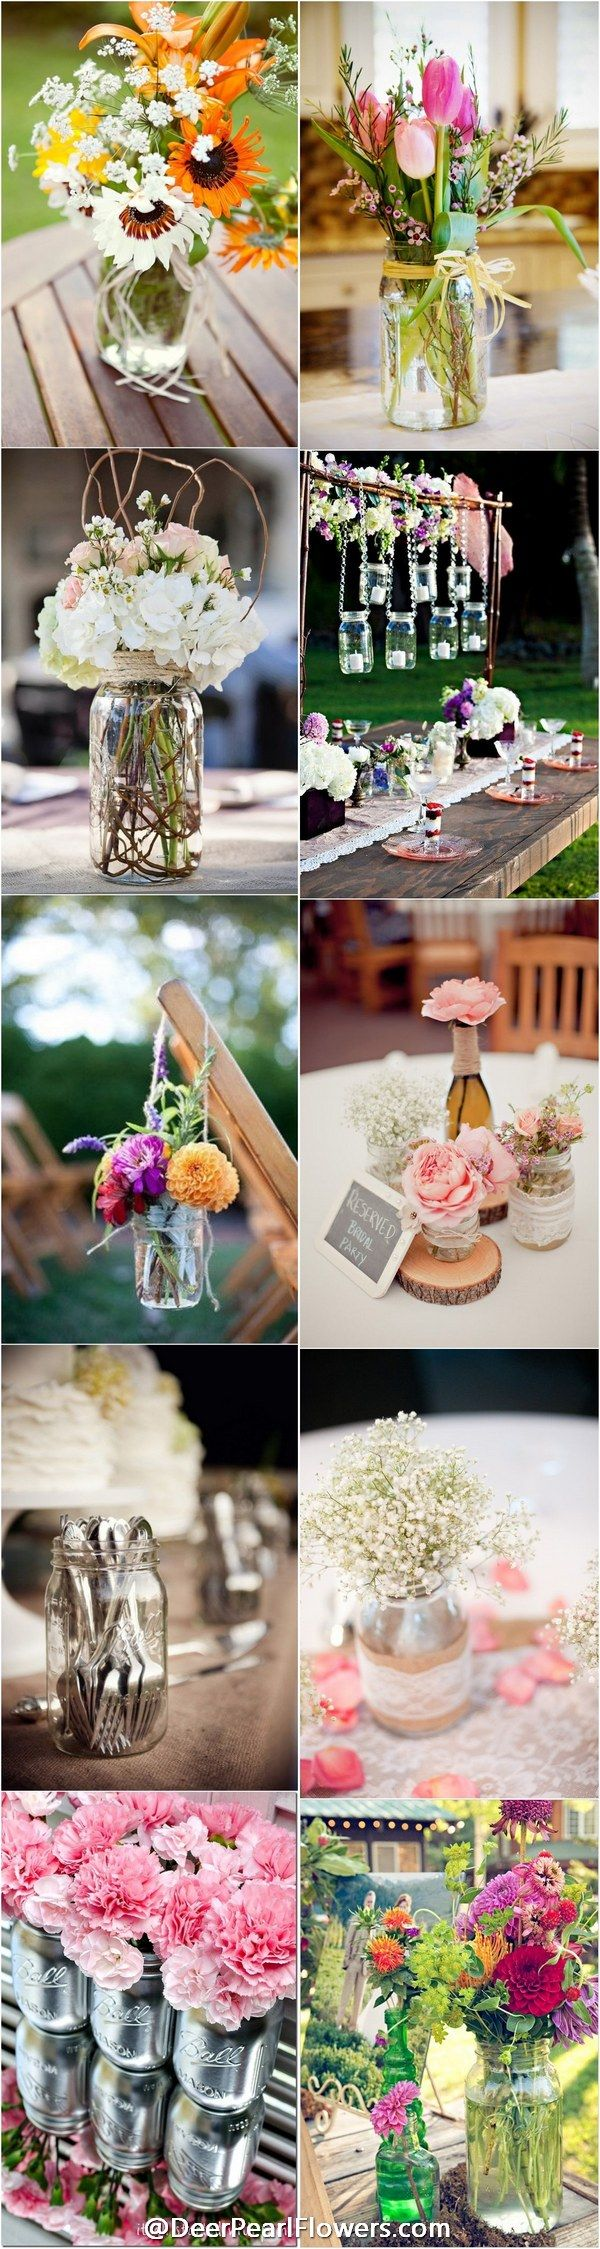 Rustic country mason jar wedding ideas